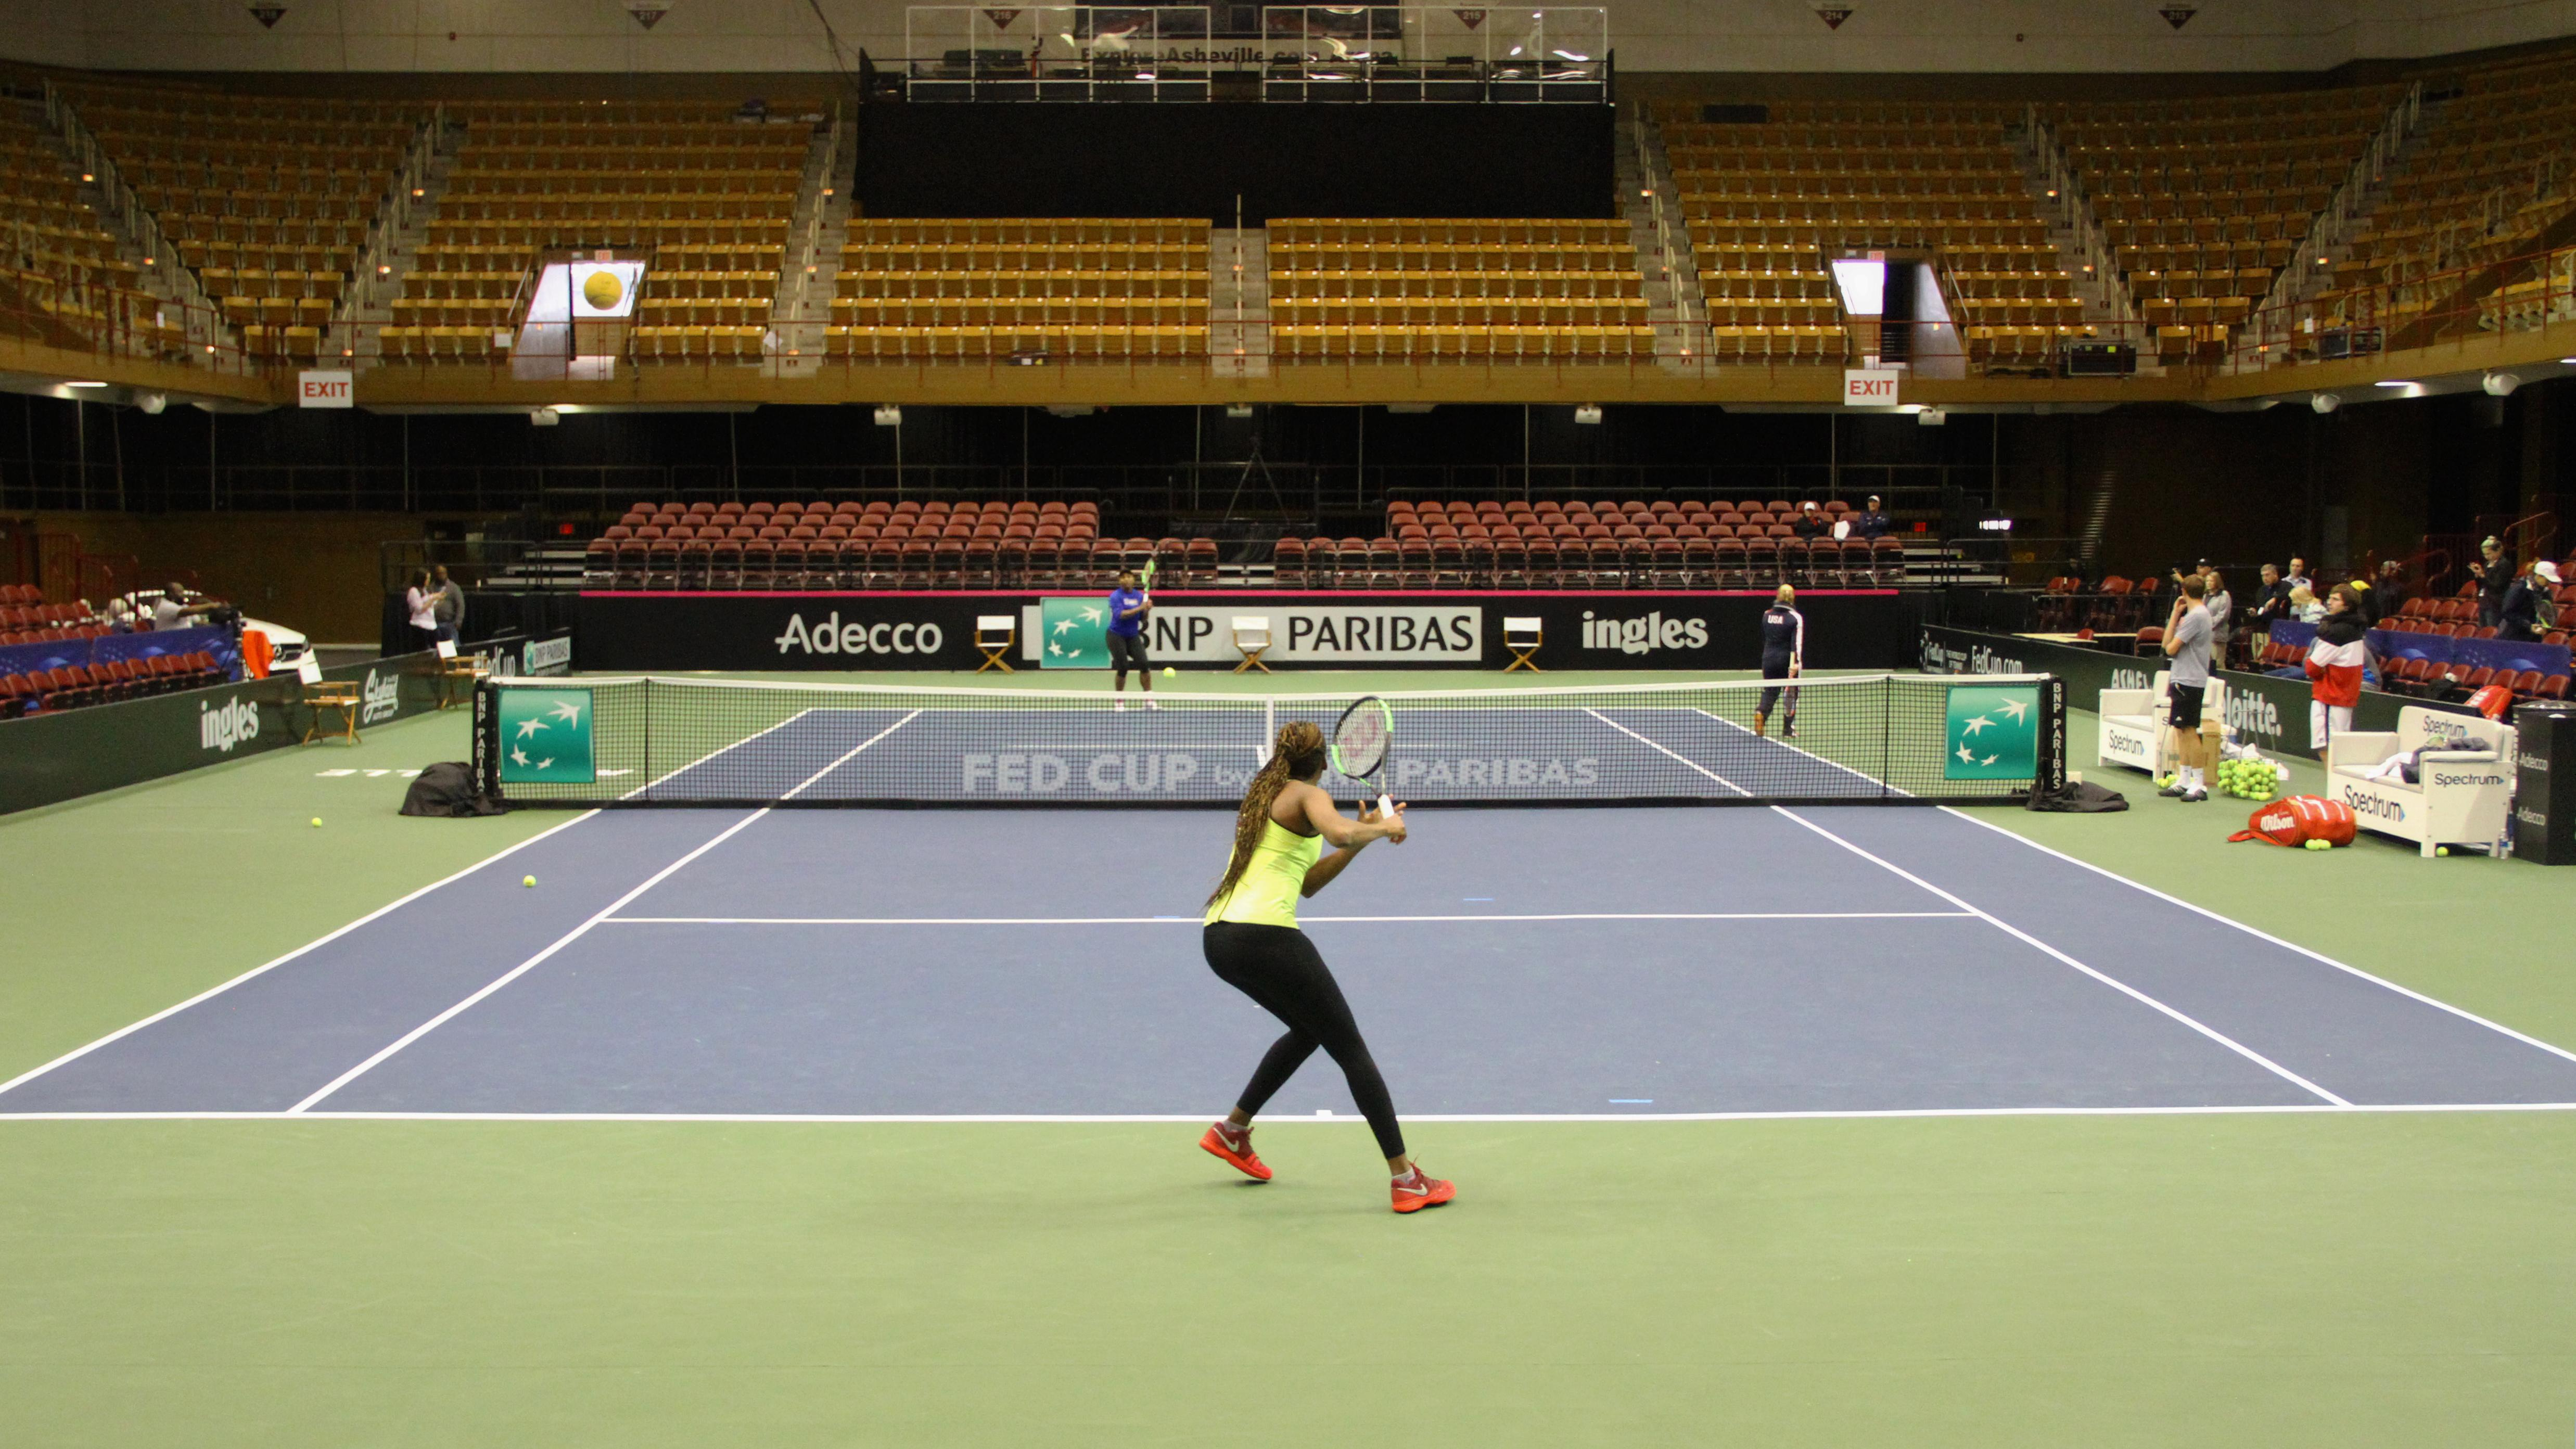 Venus and Serena Williams practice at the US Cellular Center on Feb. 7, 2018, ahead of the Fed Cup. (Photo credit: WLOS Staff)